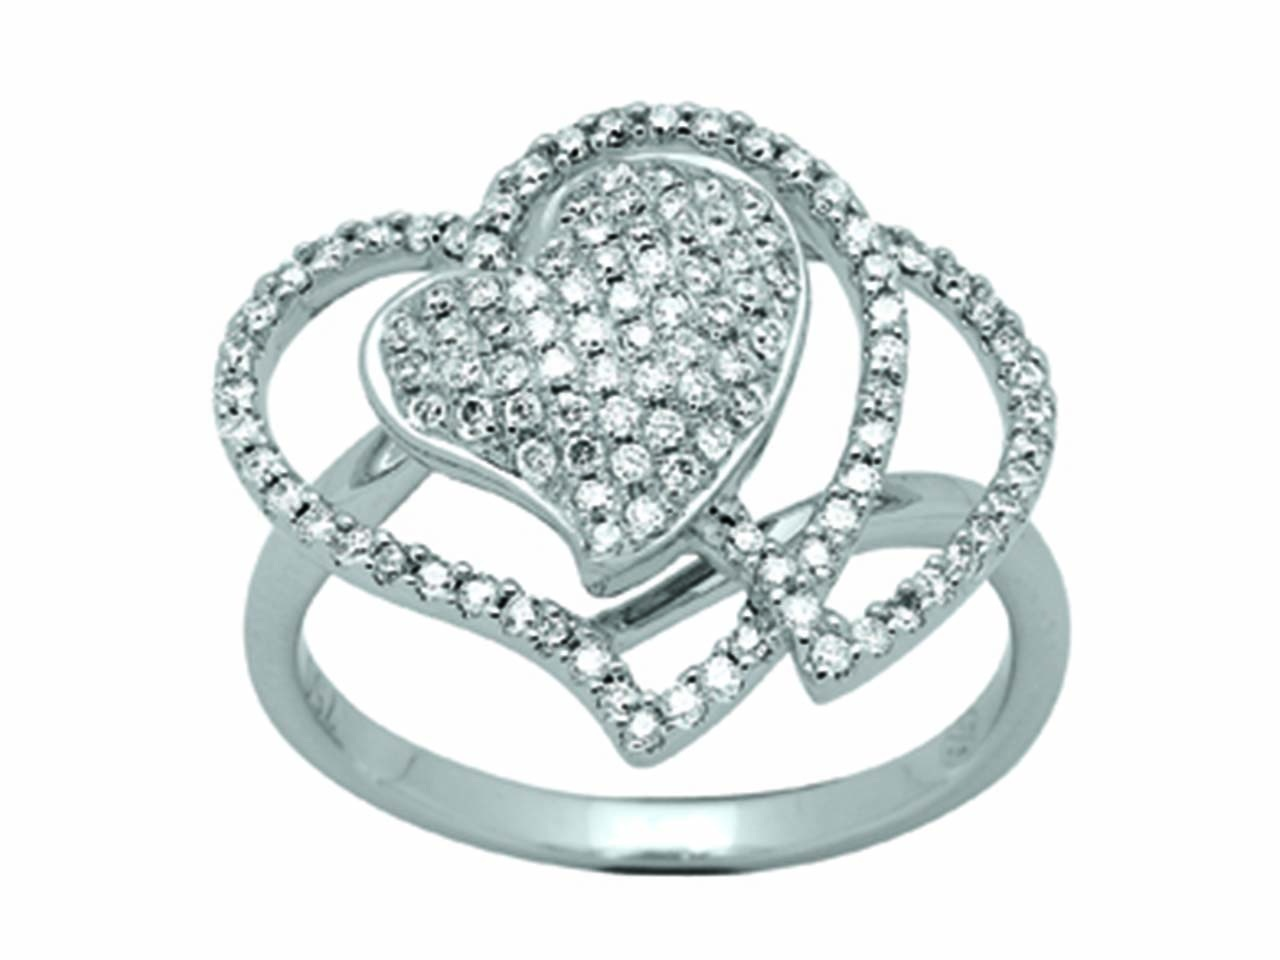 Bague coeur et courbes Or gris, diamants 0,57 ct